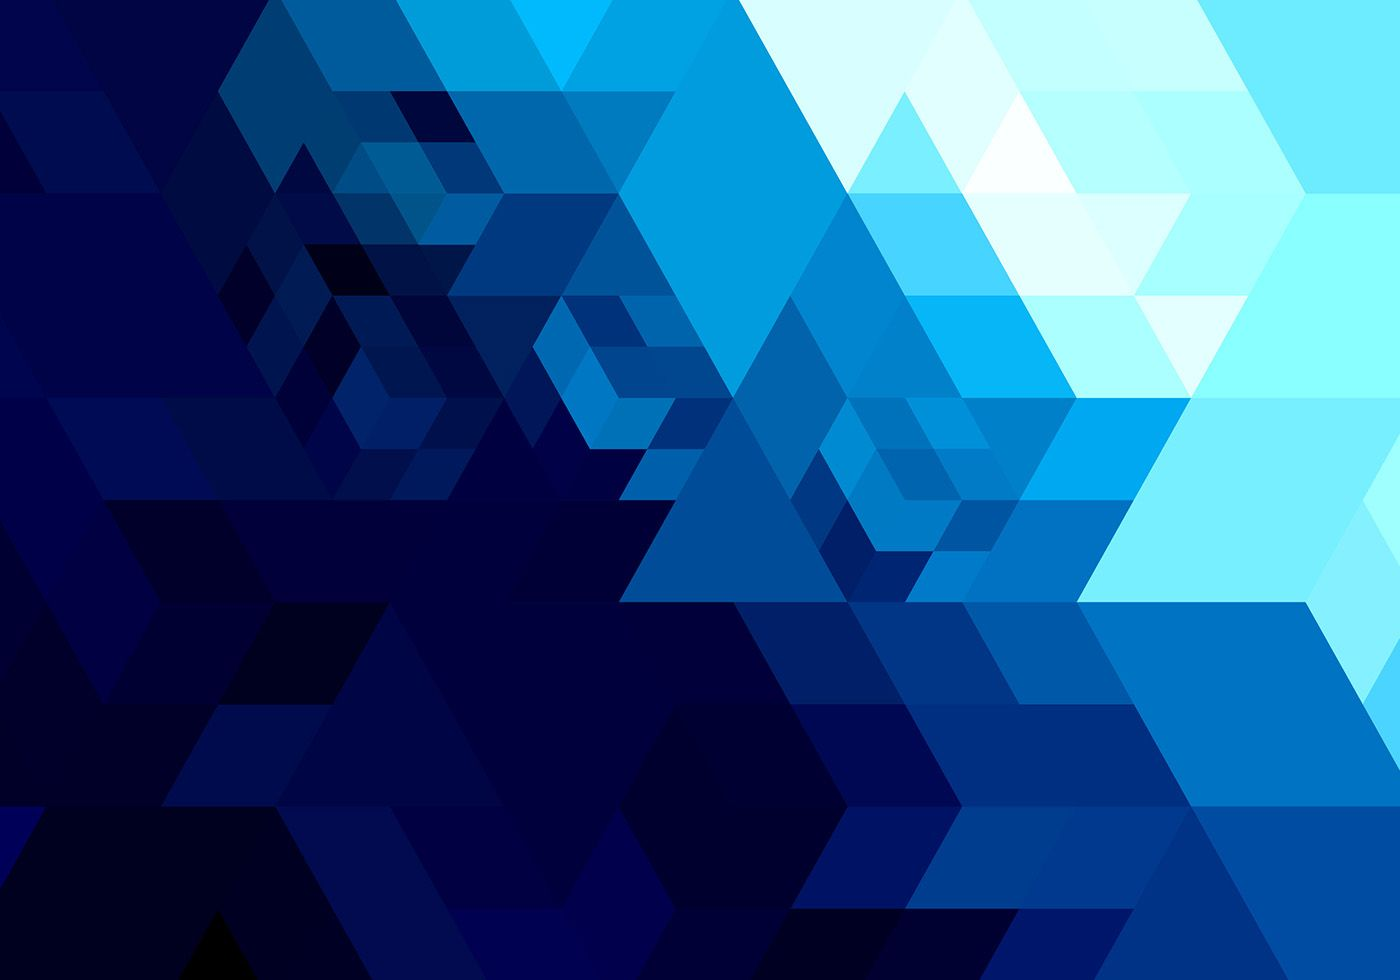 Pin By Honey Touch Creations On Mood Board For Funky Trunks Geometric Mens Swimwear 2017 Blueface Angelfish Abstract Royal Blue Wallpaper Geometric Shapes